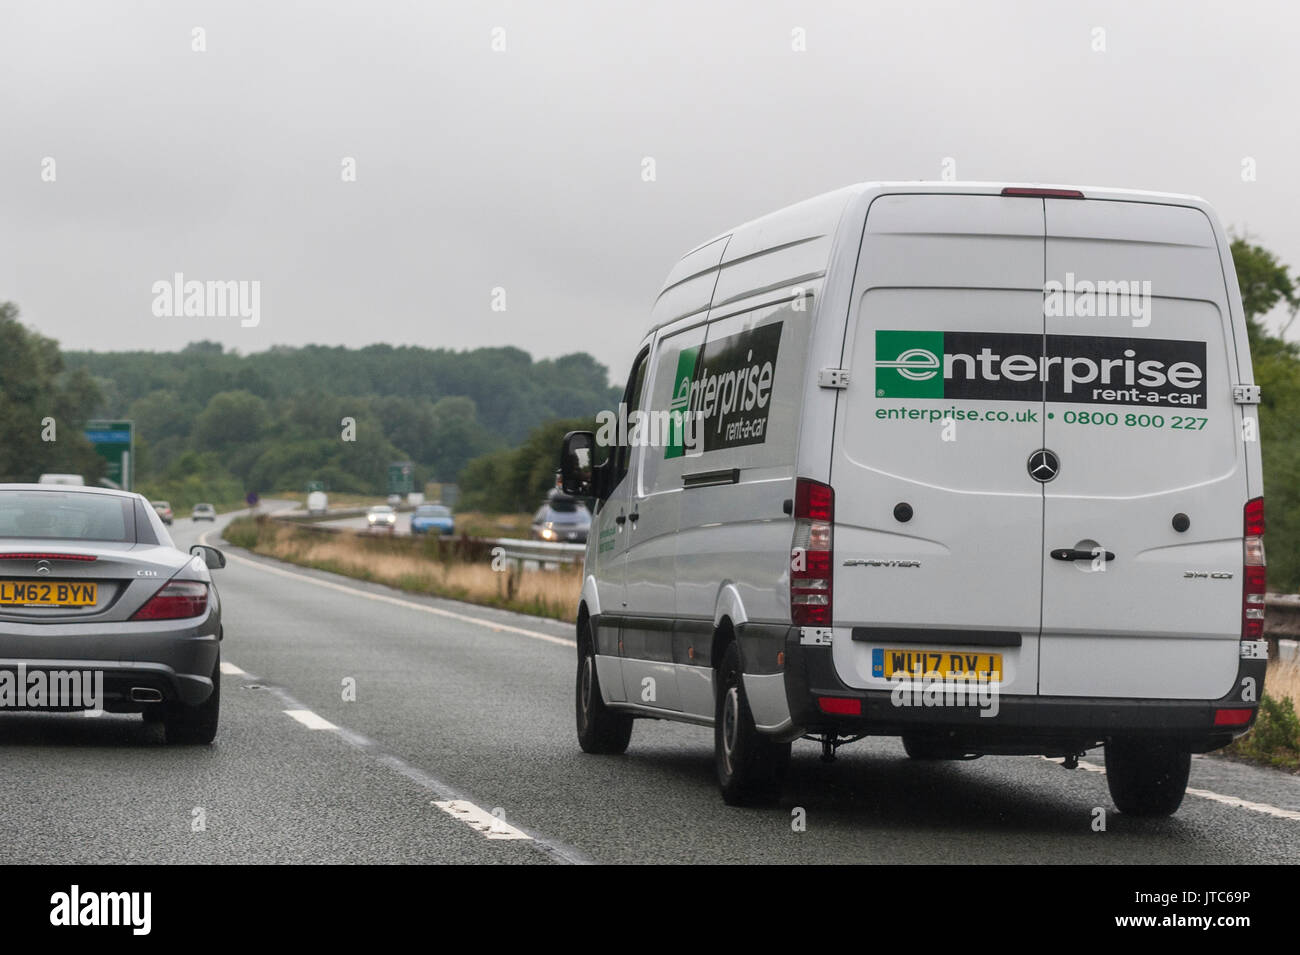 d339ad87c2 A Mercedes Sprinter enterprise rental van driving on a main road in the Uk  - Stock